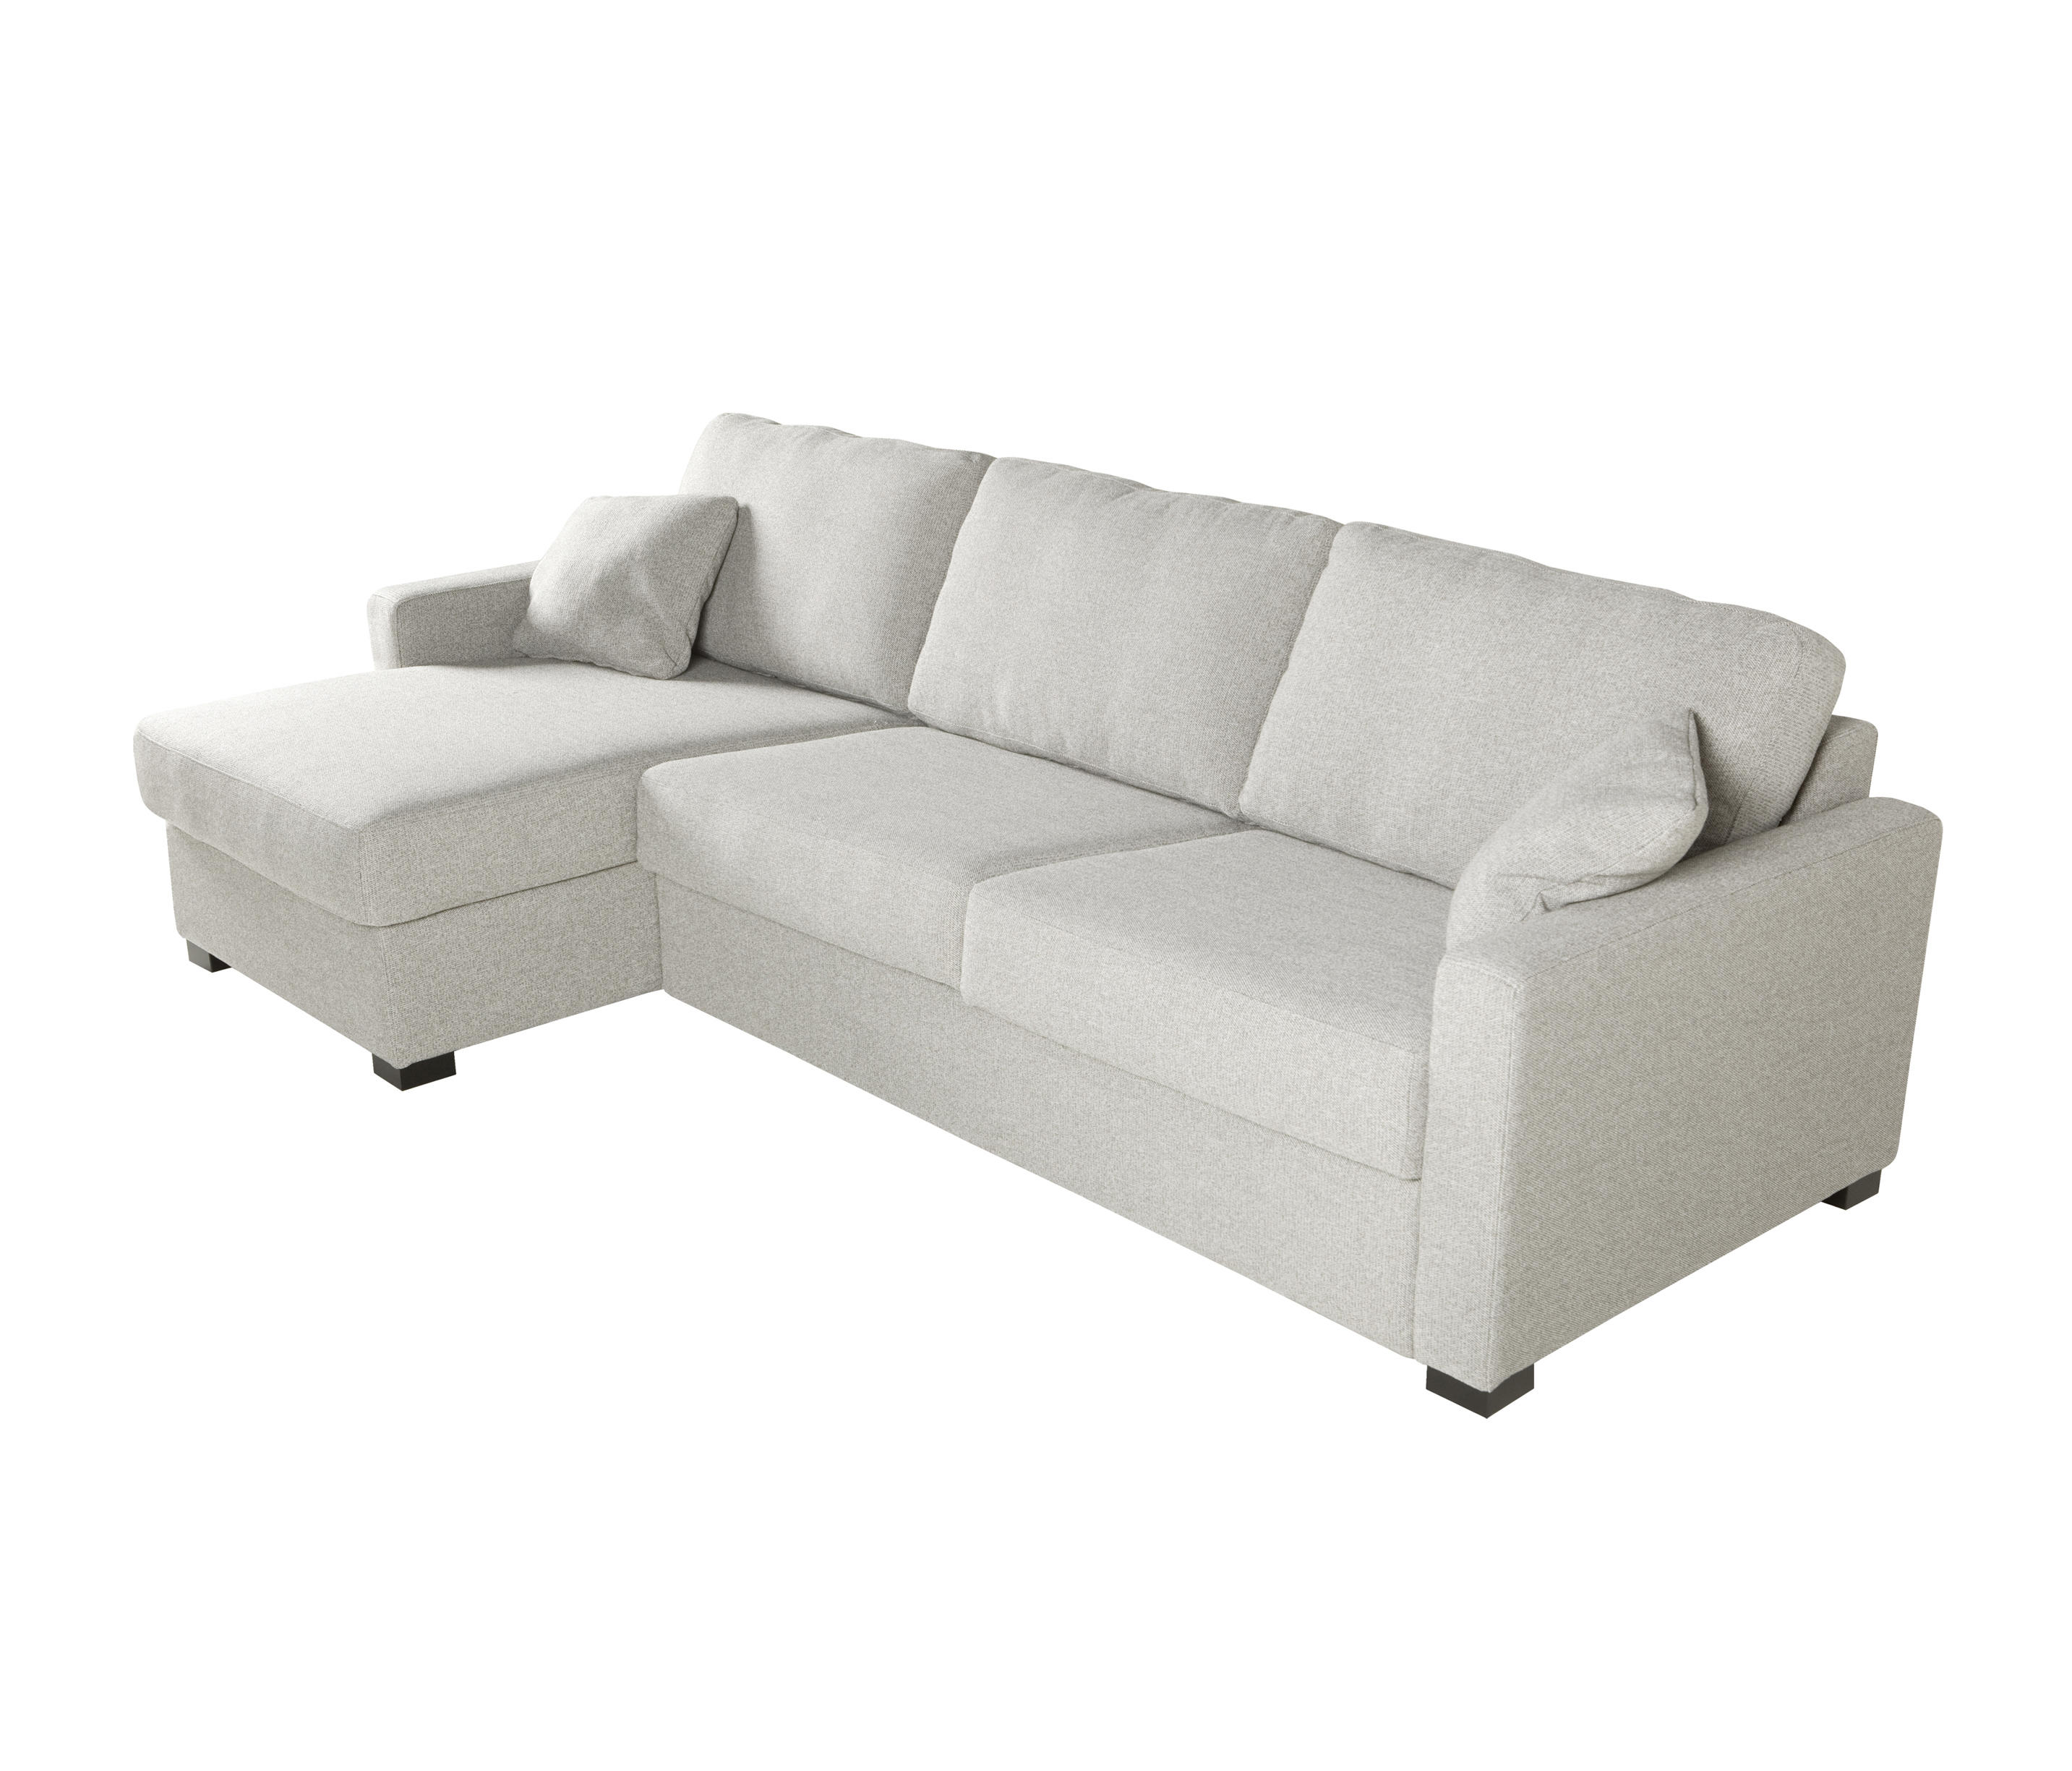 Lukas Sofas From Sits Architonic